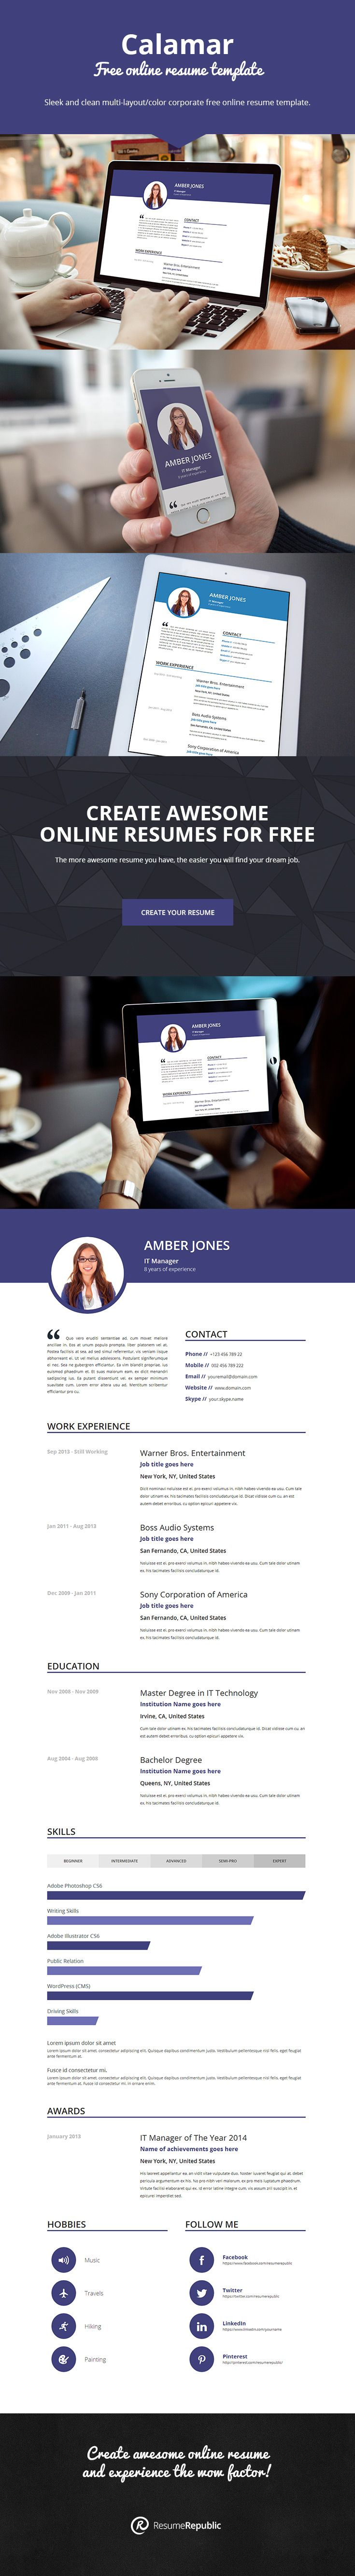 help me build my resume for free best free resume collection